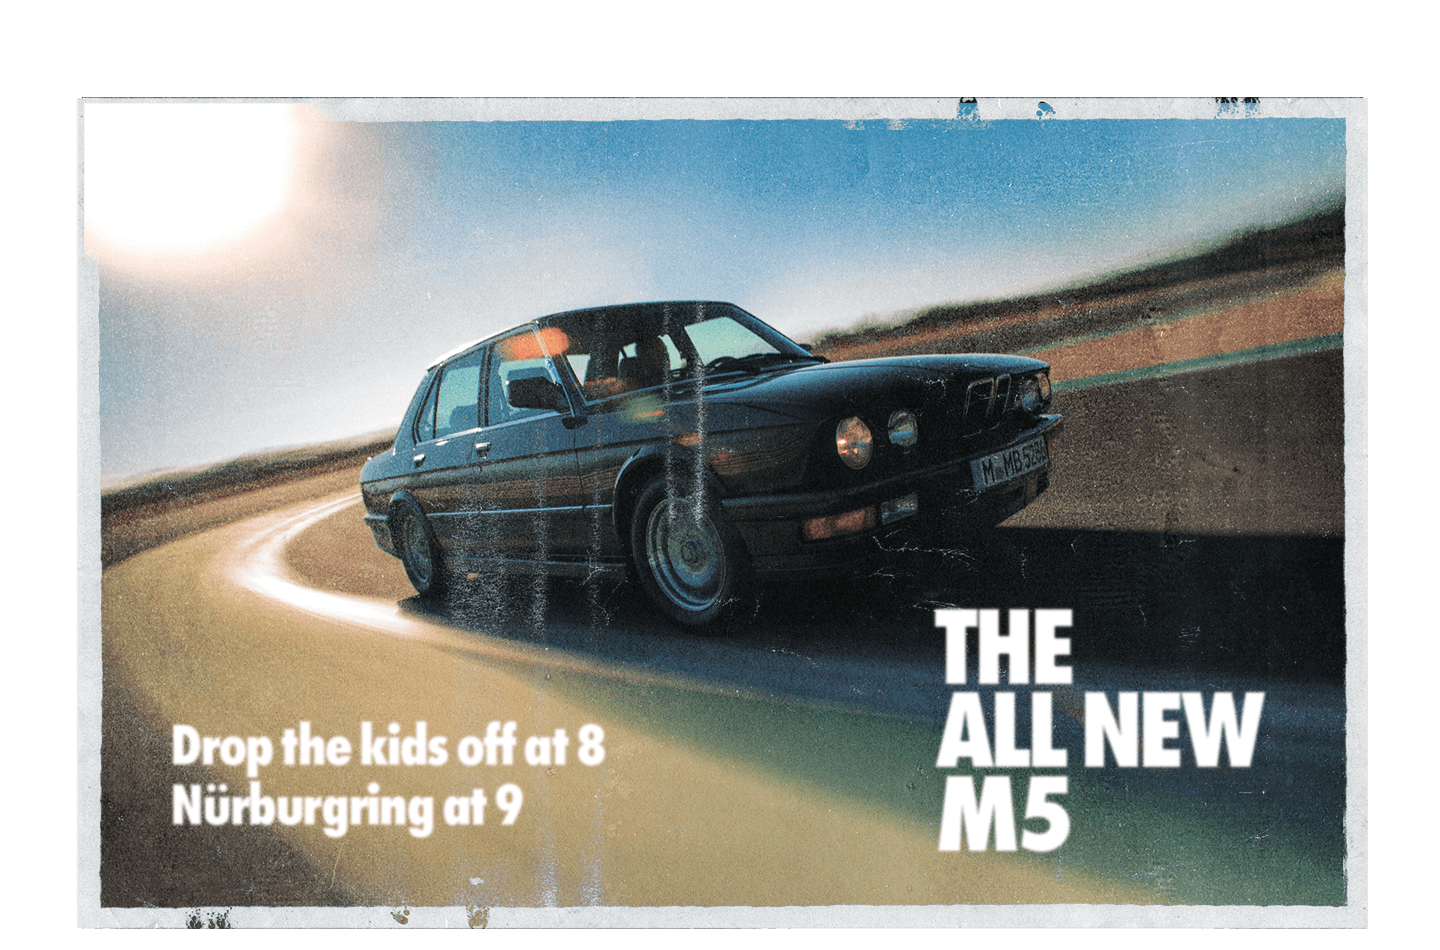 The All New BMW M5 Poster